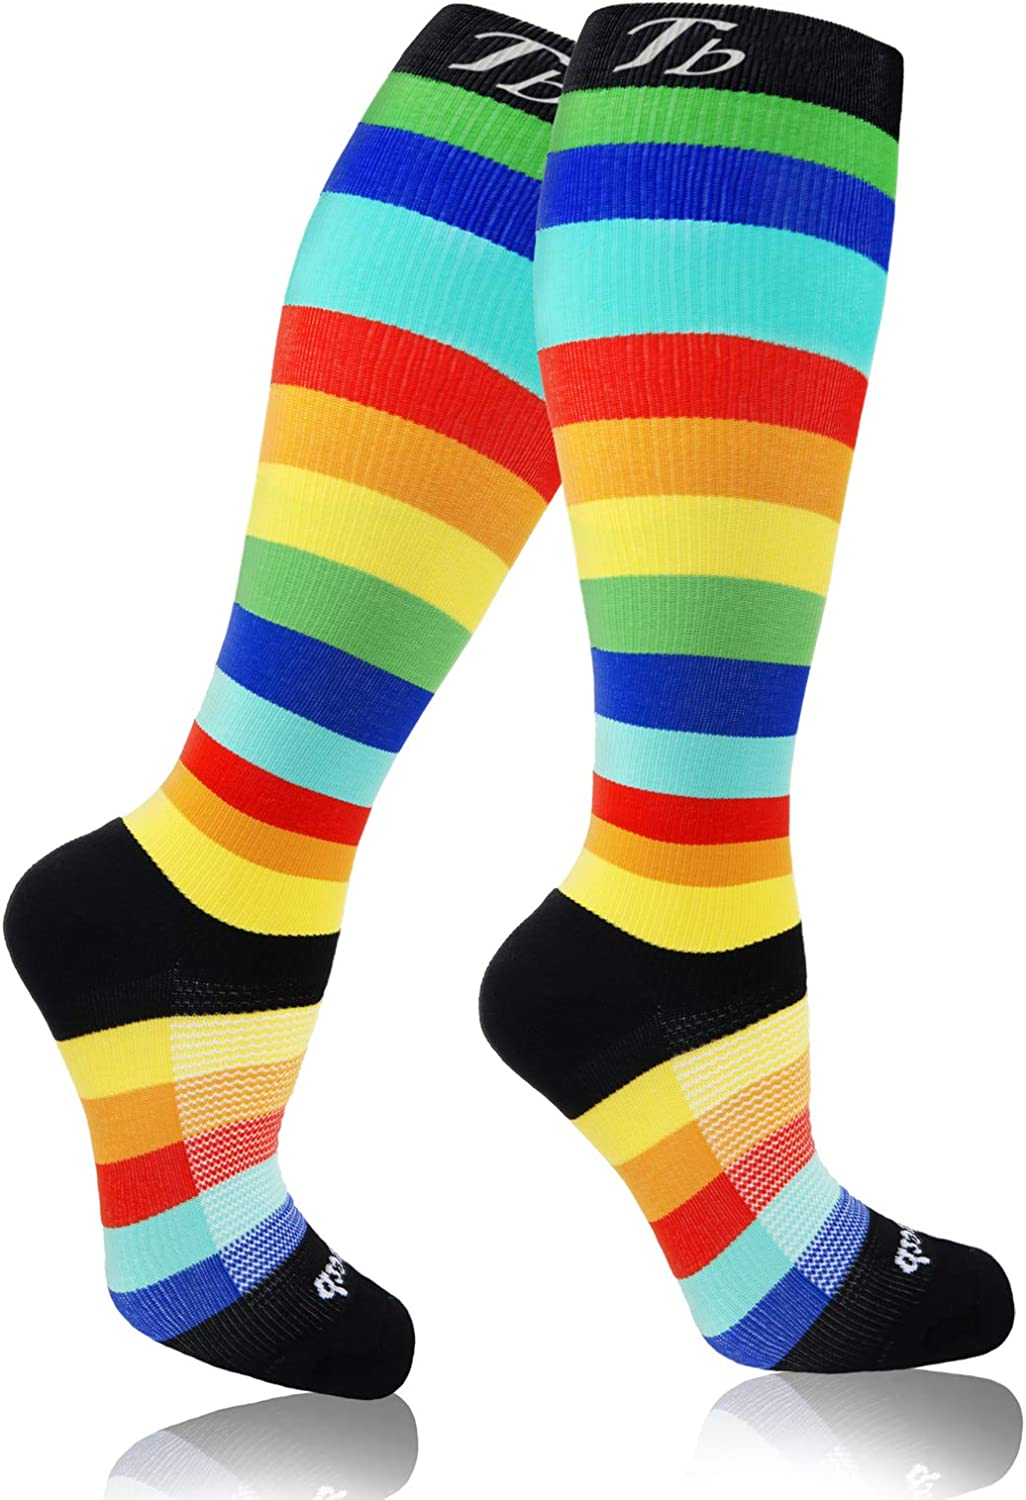 Nurse plus size compression Daily bargain sale socks Bombing free shipping cir knee breathable high women